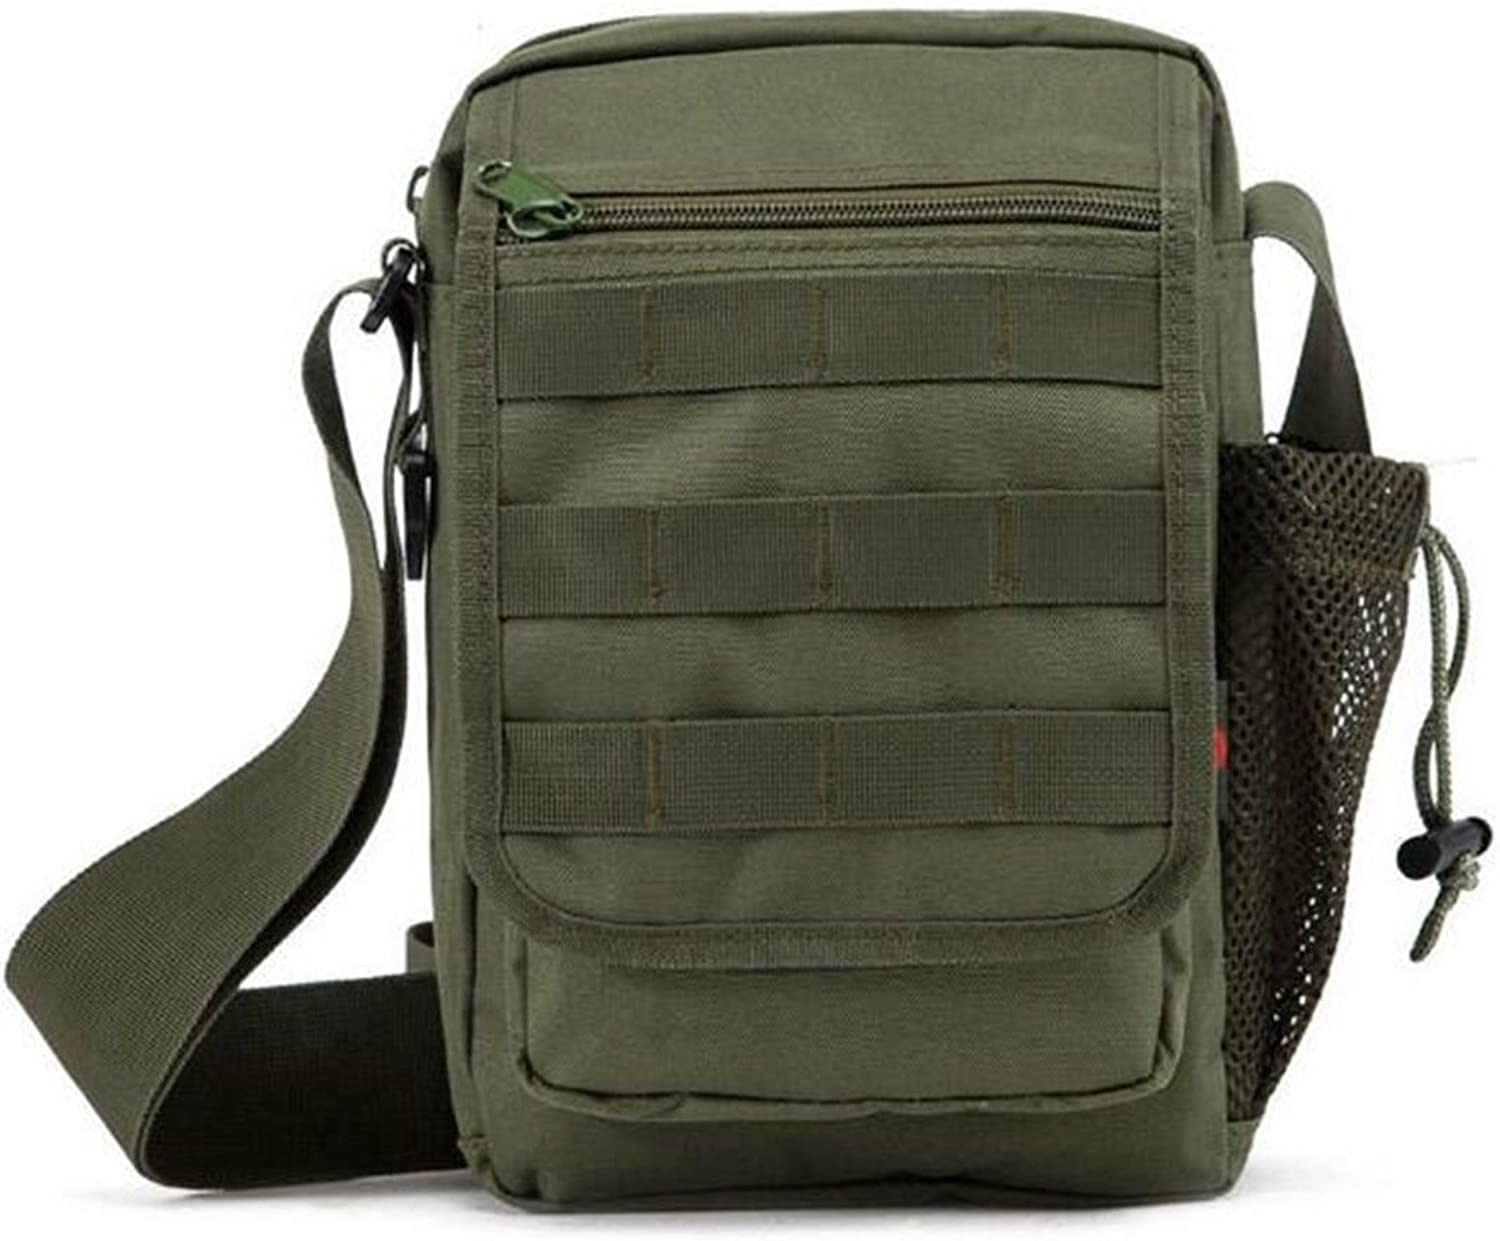 Backpack Outdoor Shoulder Bag MultiFunctional Casual Couple Bag for Men and Women Small Bag Neutral Messenger Bag, Green